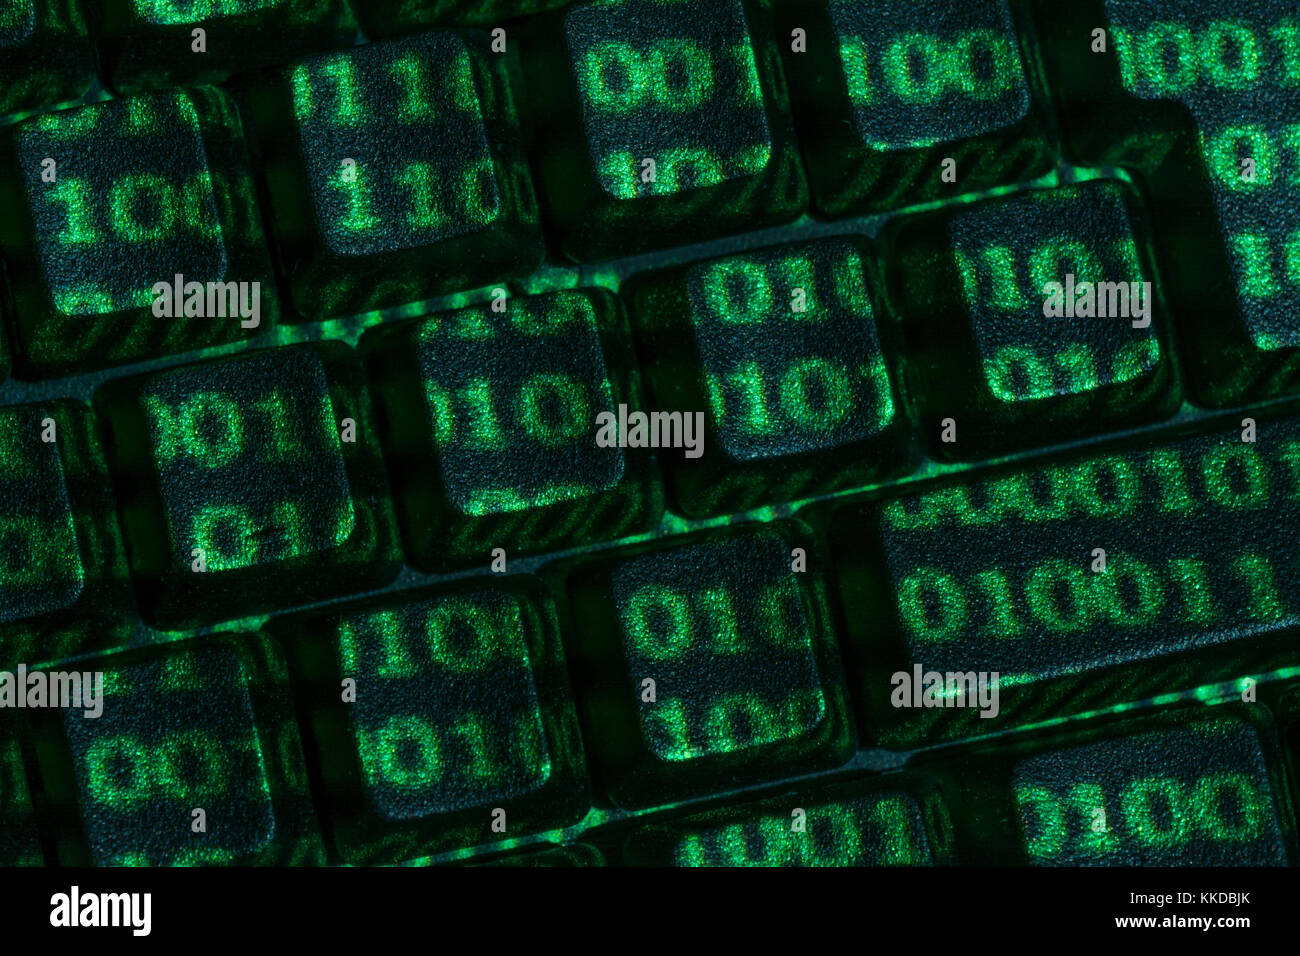 Plain black Qwerty keyboardetc. keys with green Binary 0's and 1's projected on surface. Potential metaphor - Stock Image